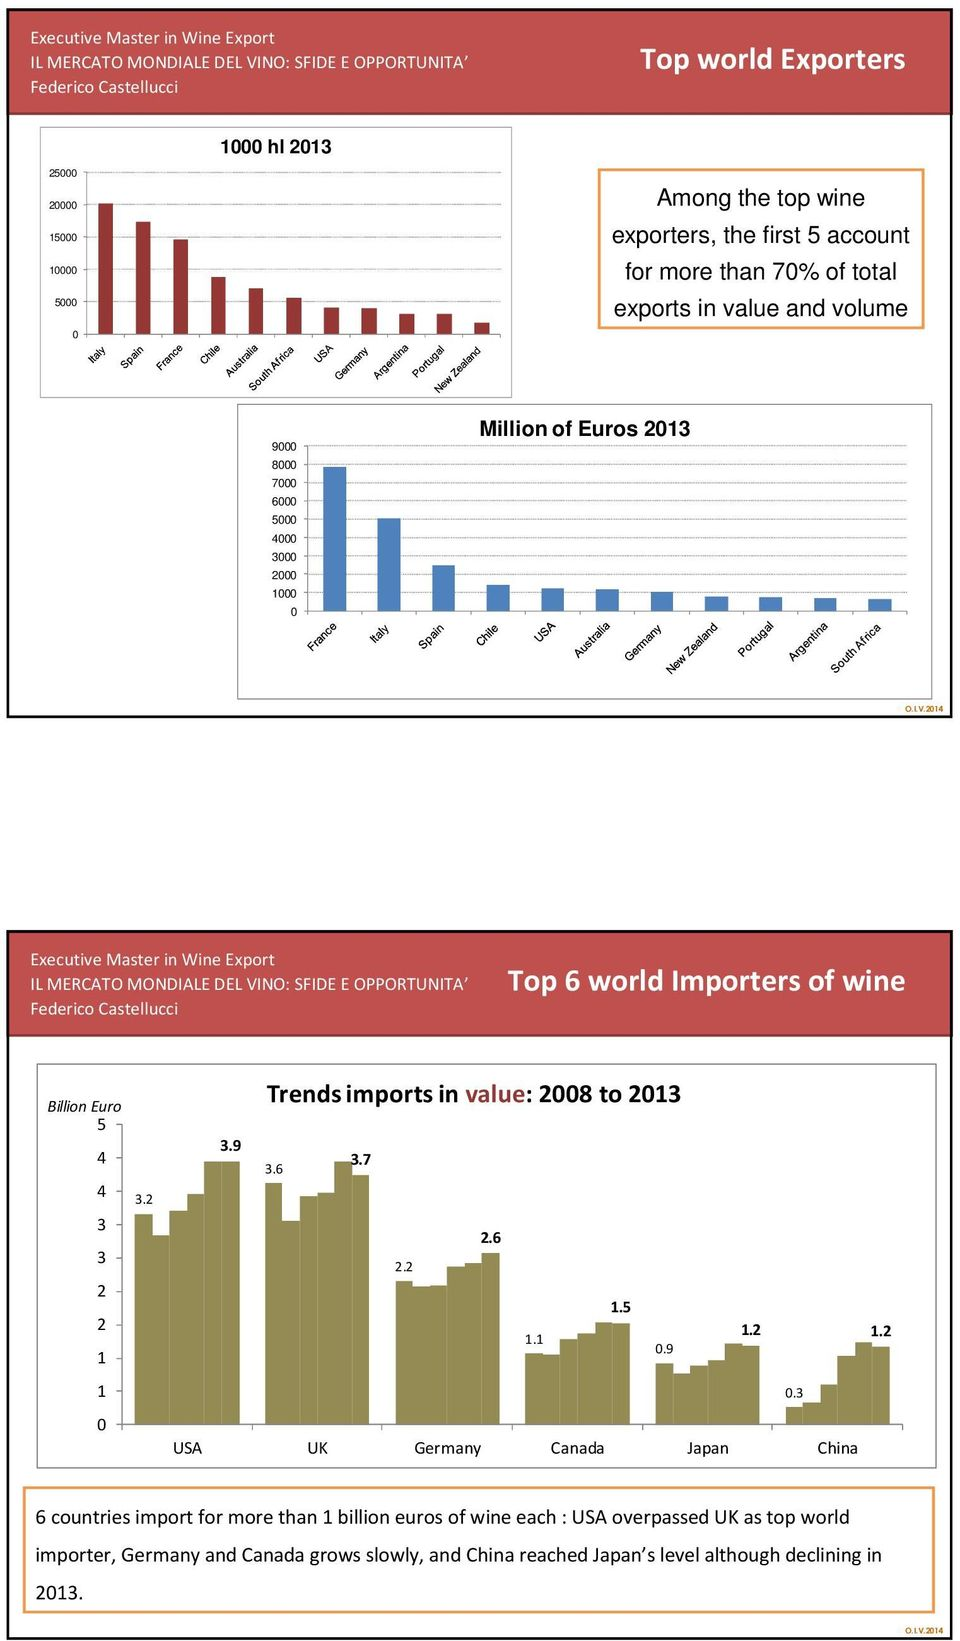 and volume 9 8 7 6 5 3 1 Million of Euros 13 Top 6 world Importers of wine Billion Euro Trends imports in value: 8 to 13 5 3.9 3.6 3.